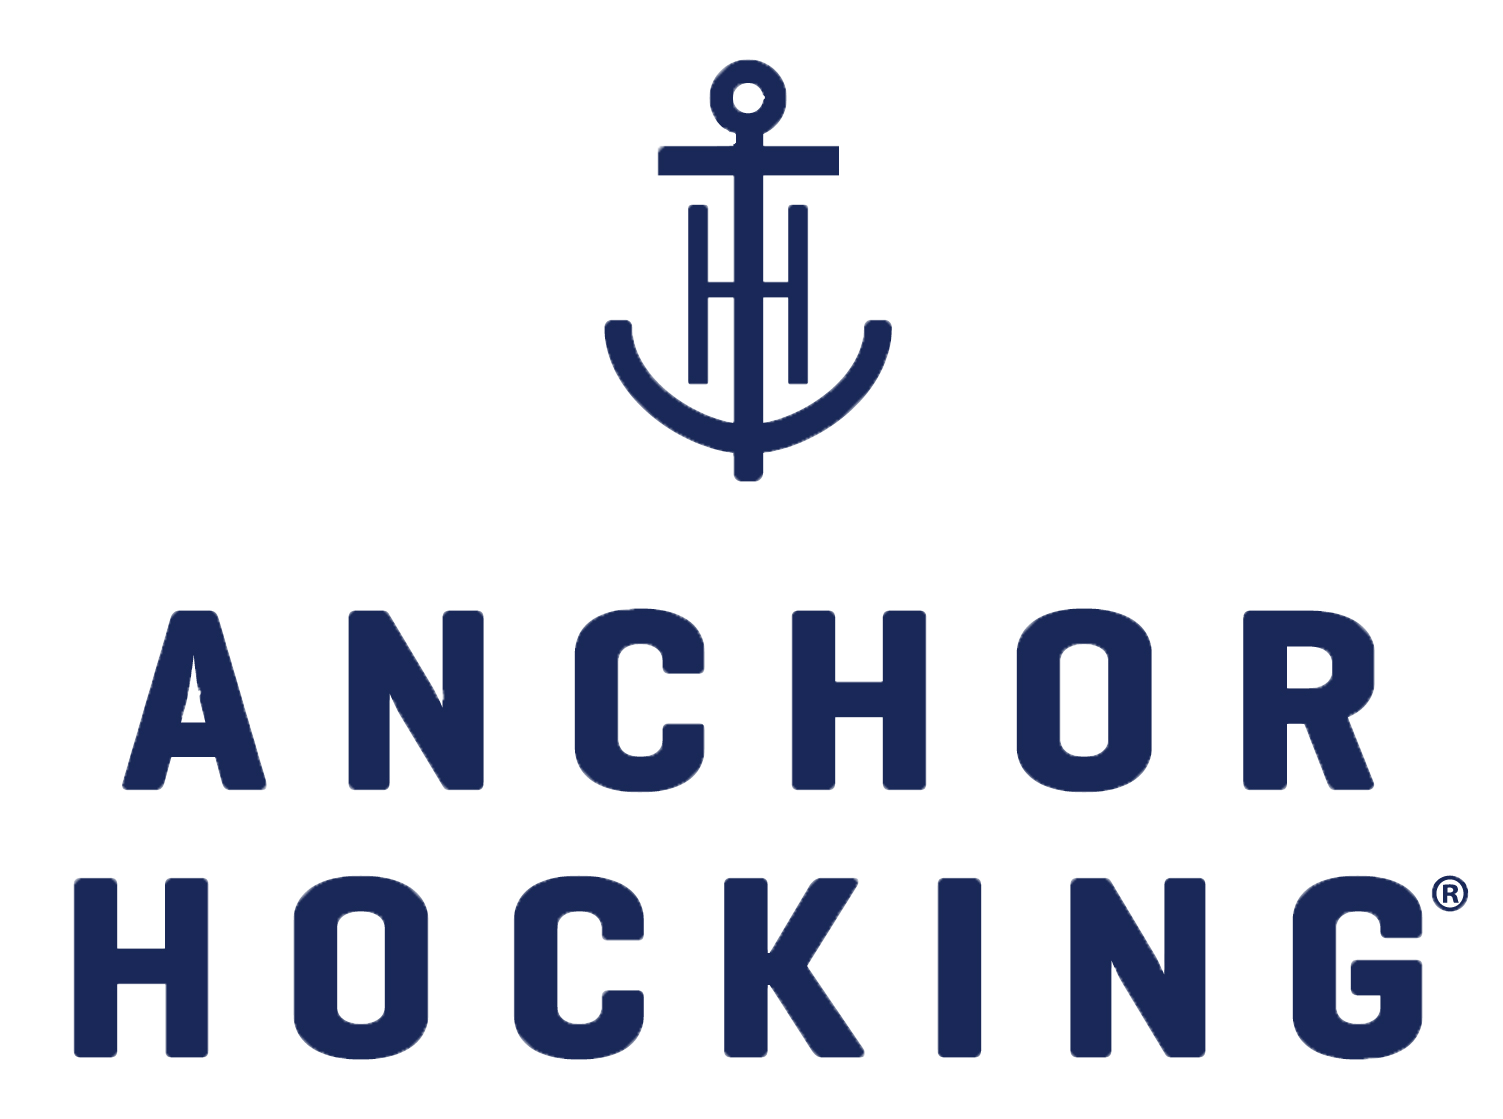 anchor hocking logo dates